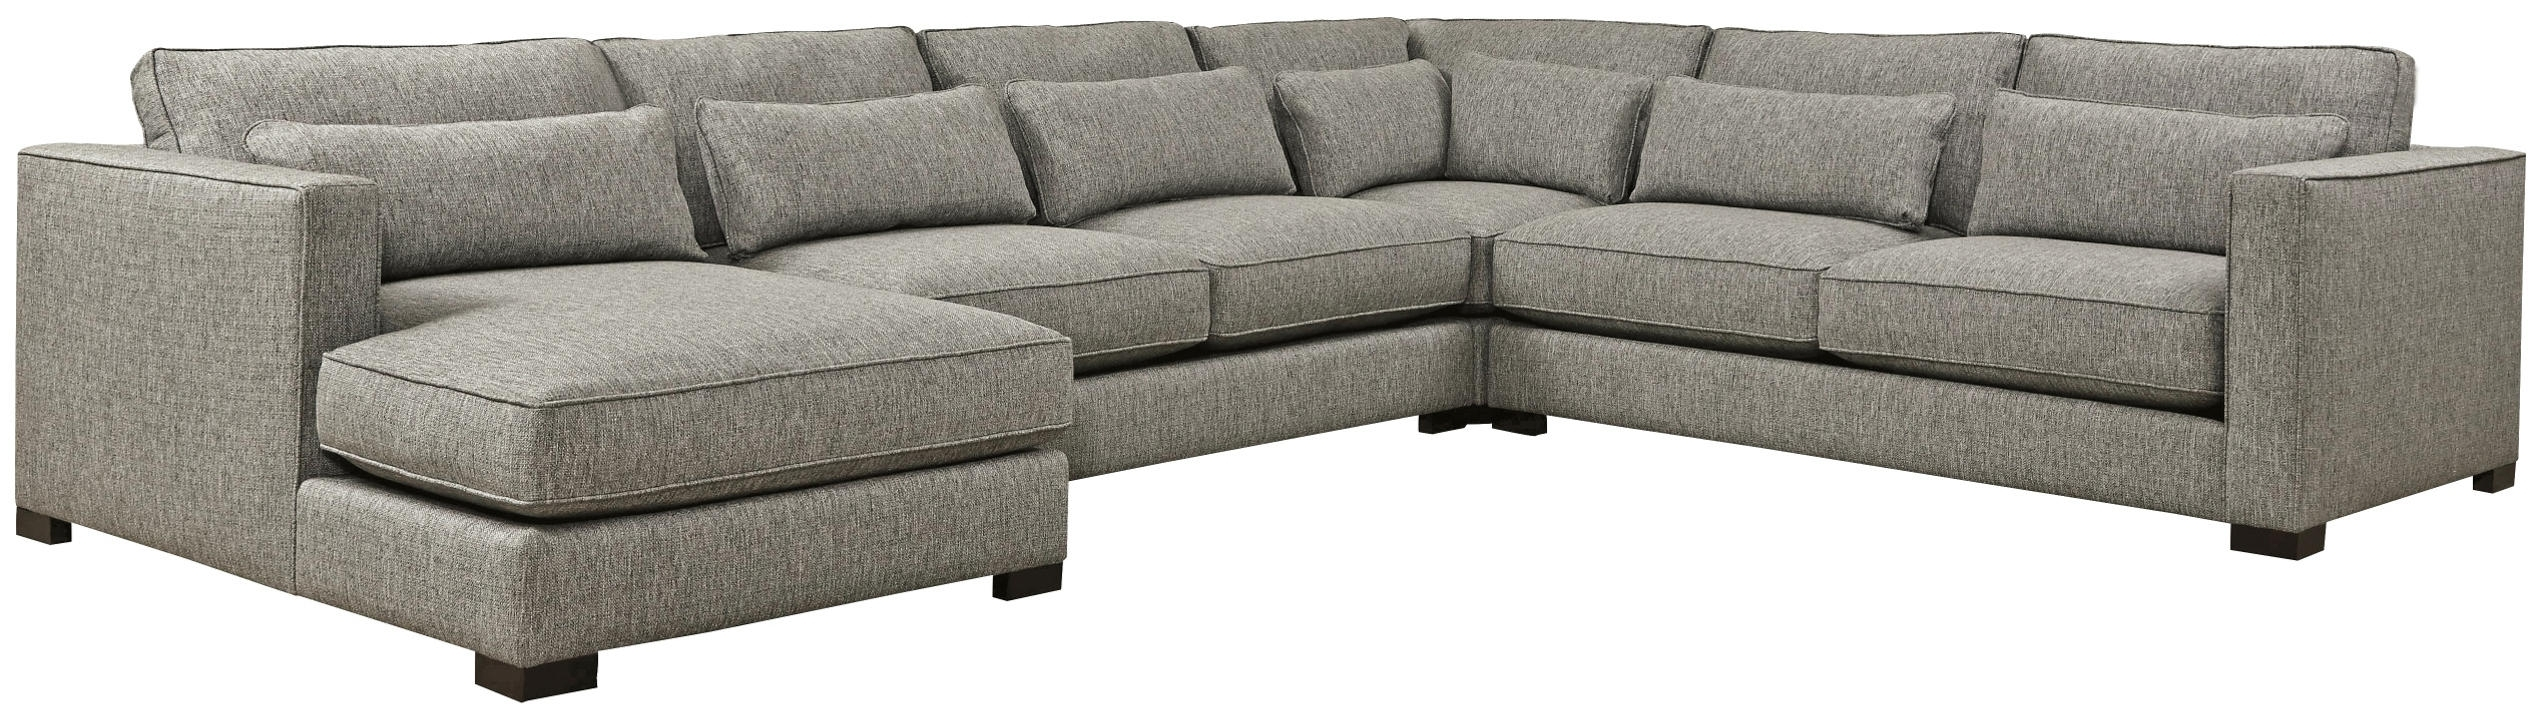 4 Piece Sectional | Soft Fabrics, Detroit And Pillows In Sectional Sofas Art Van (View 7 of 10)